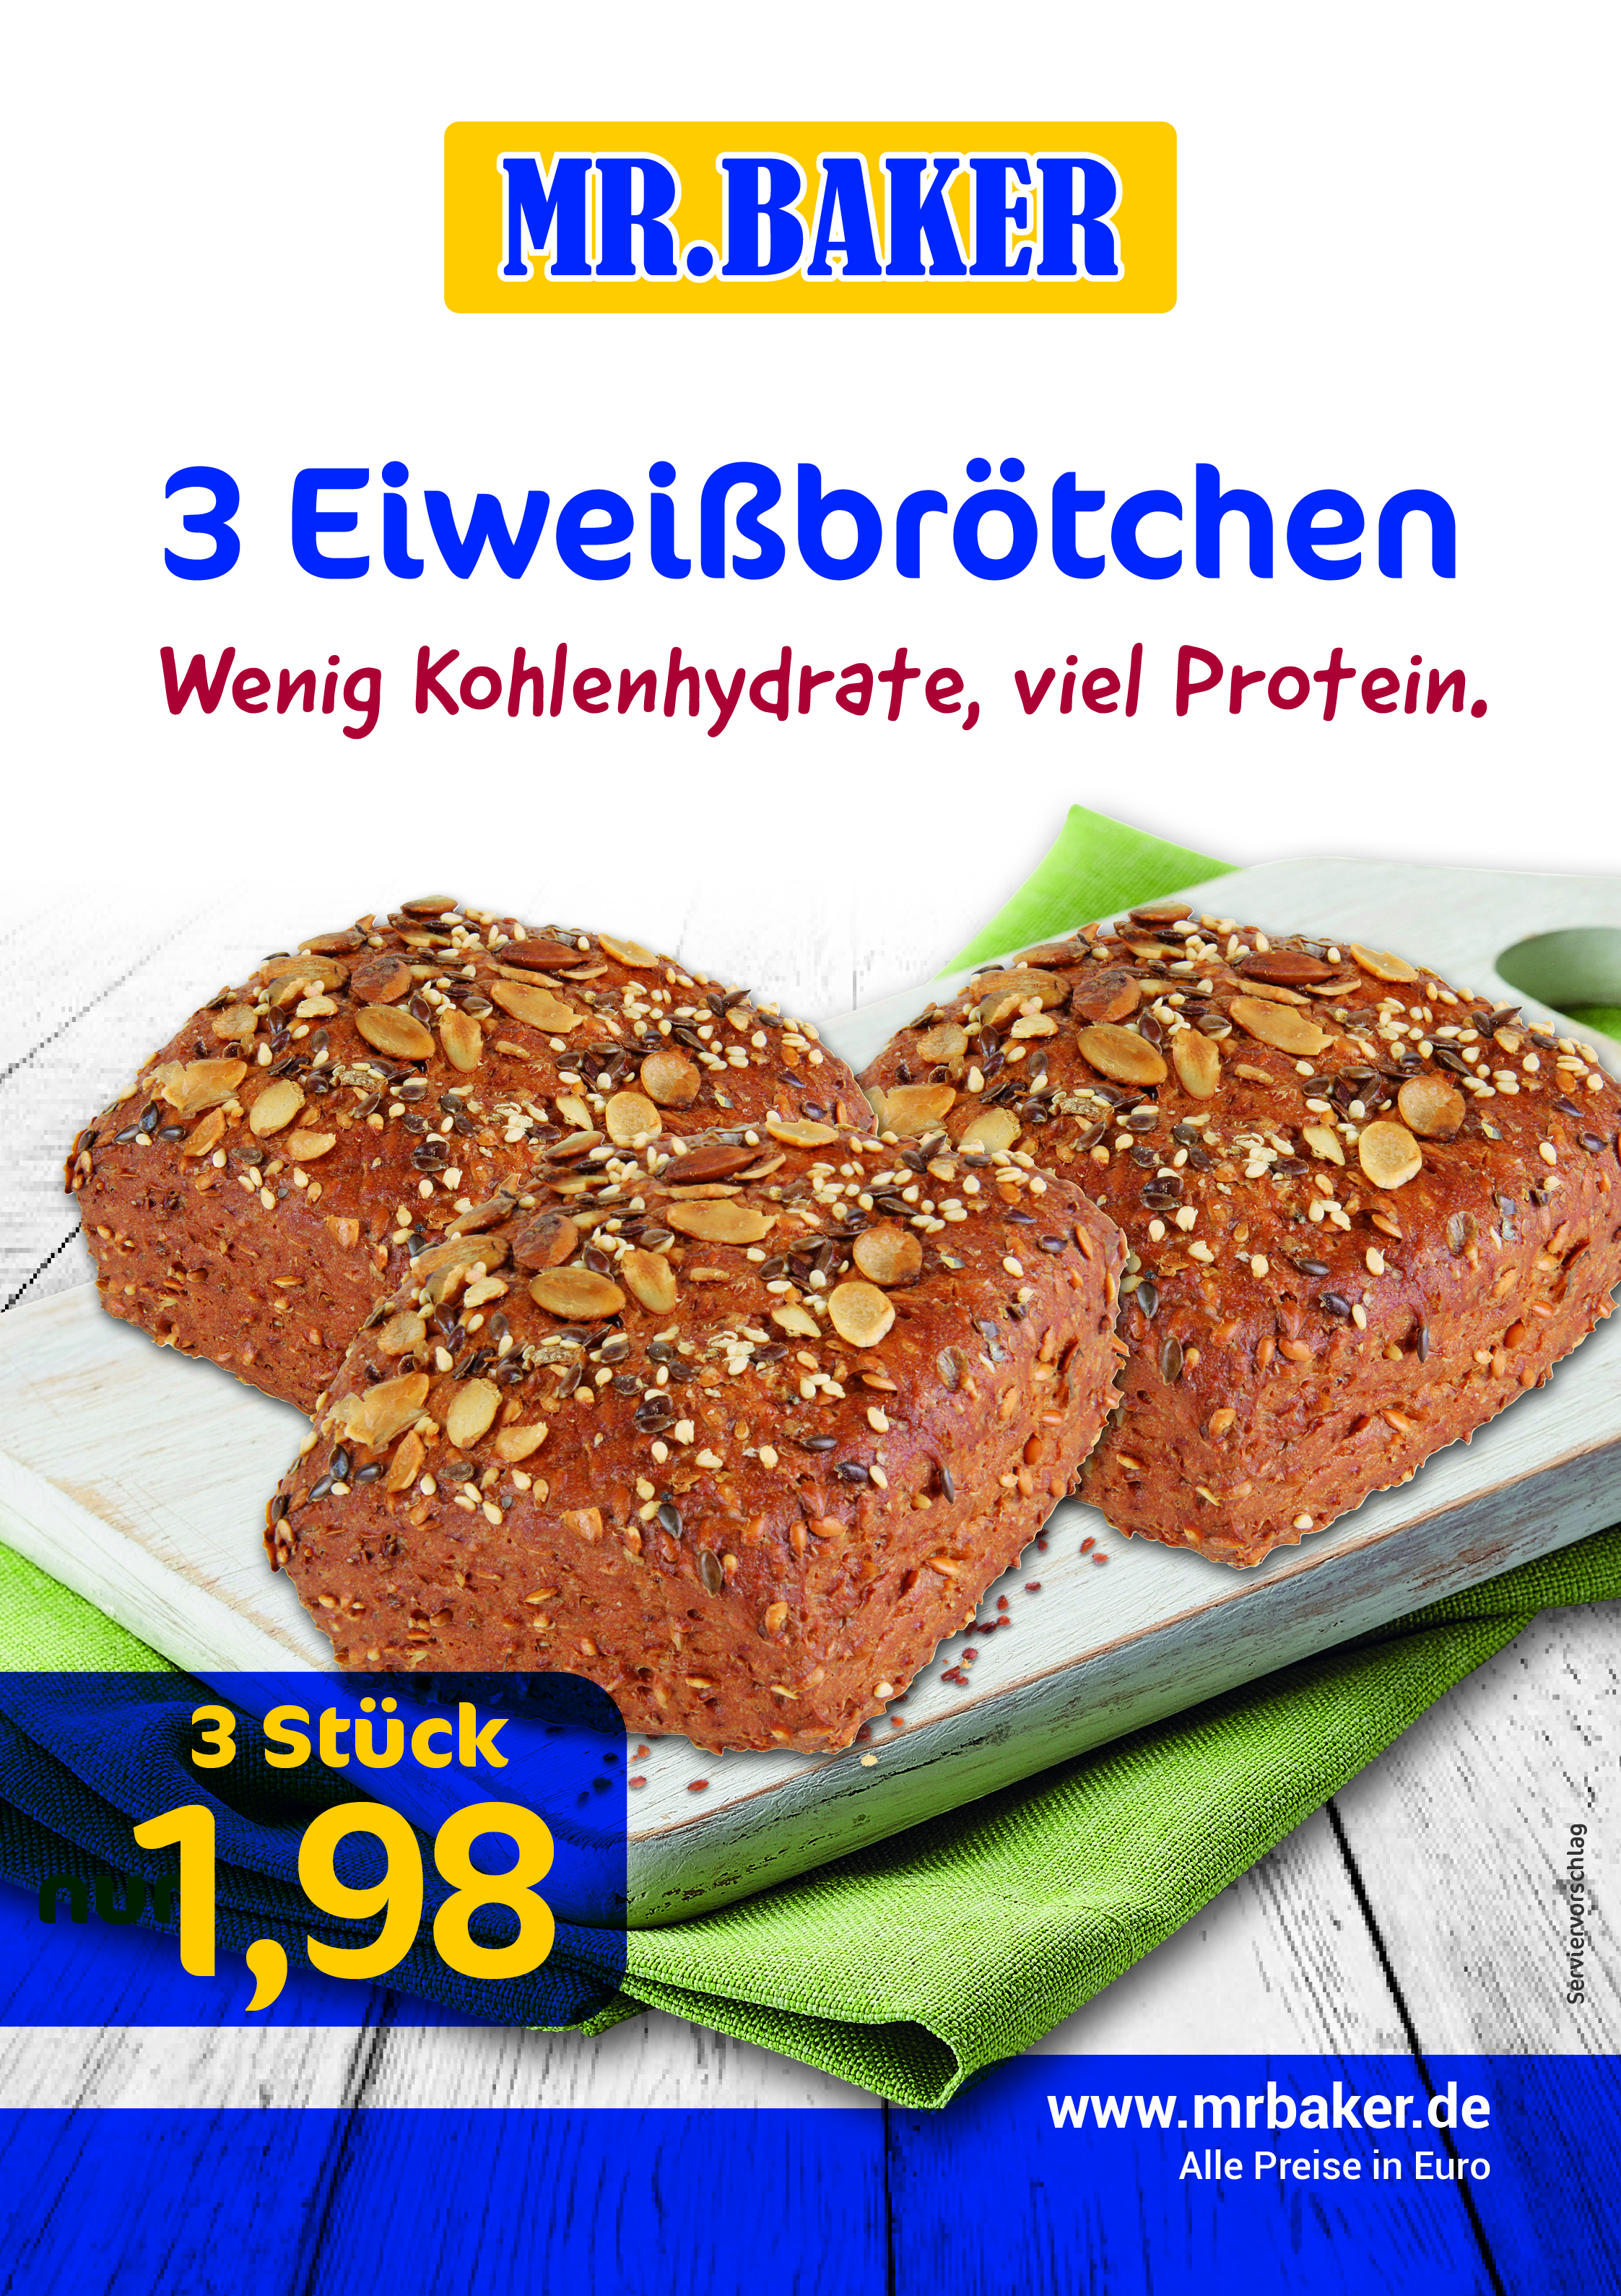 Das Mr.Baker Angebot 01. - 15. April